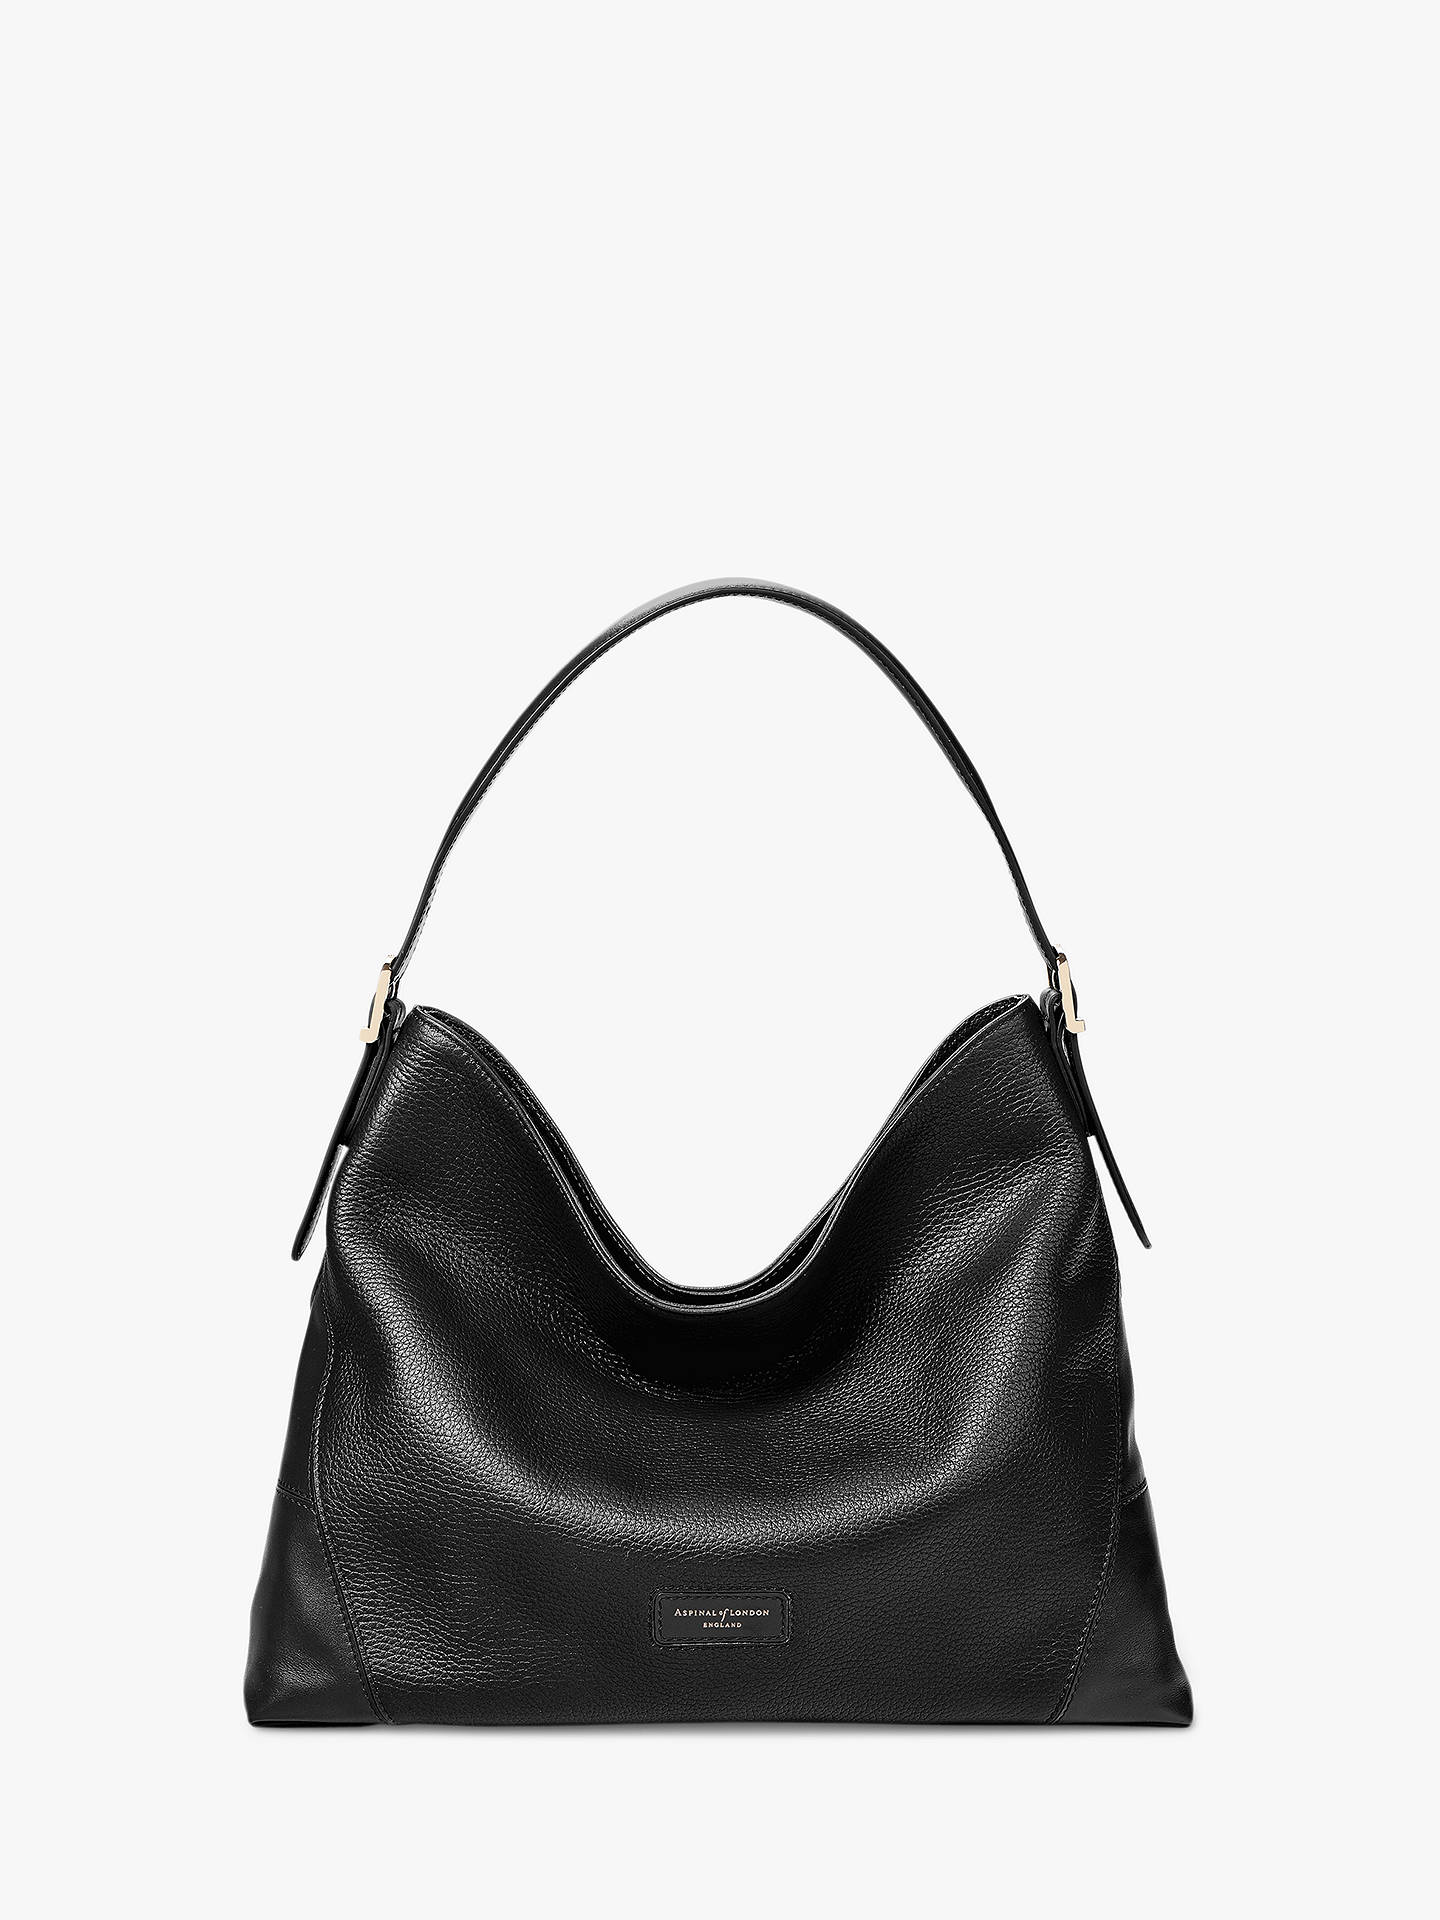 fe5e4a4335 Aspinal of London Small Leather Hobo Bag at John Lewis   Partners